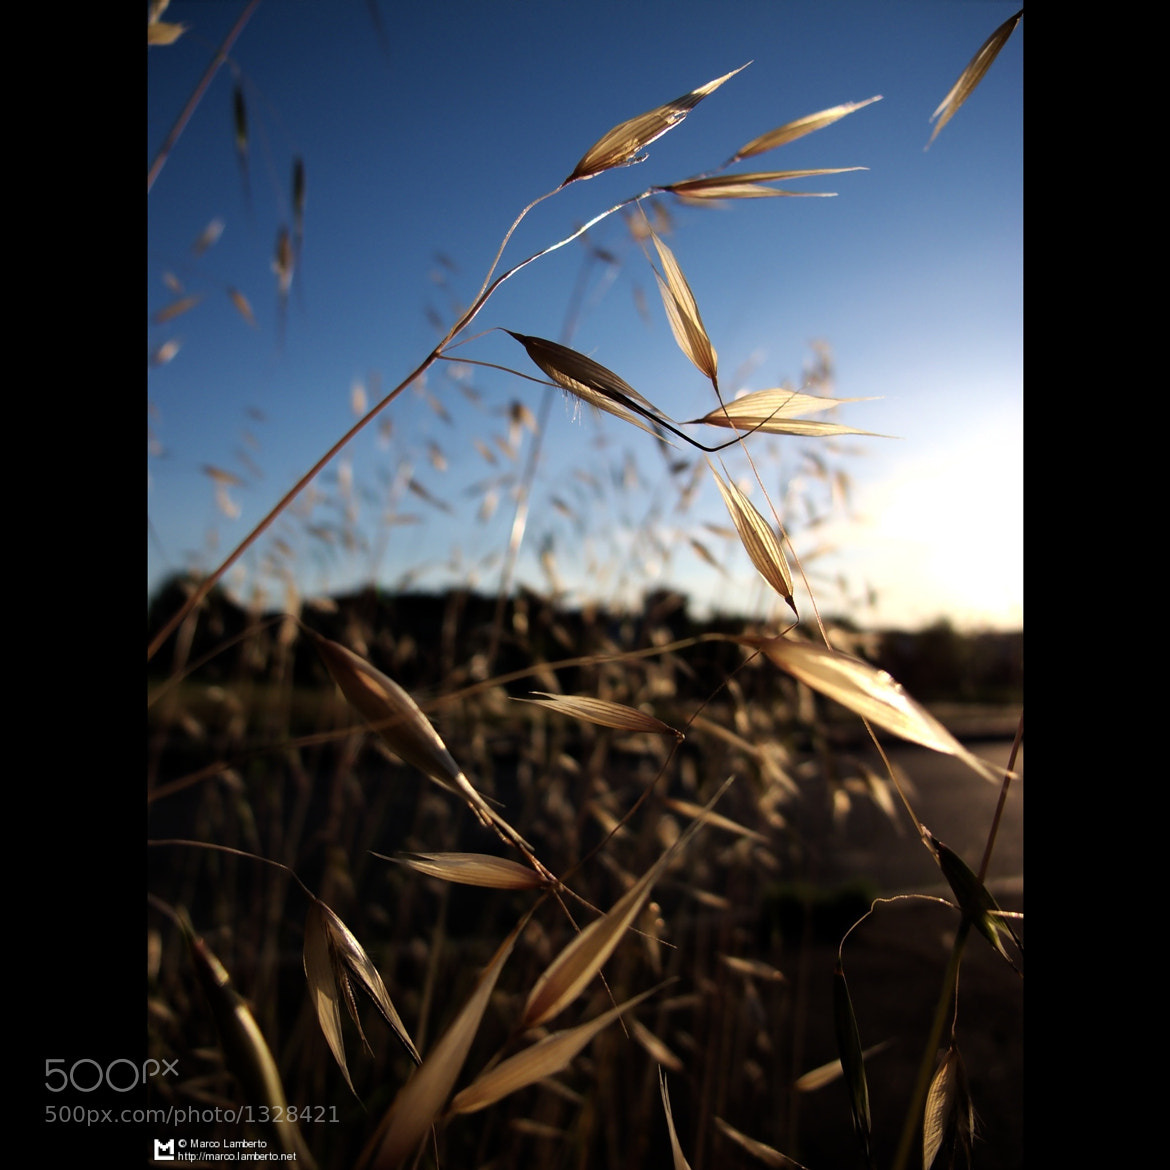 Photograph Avena - IMG_1348 by Marco Lamberto on 500px